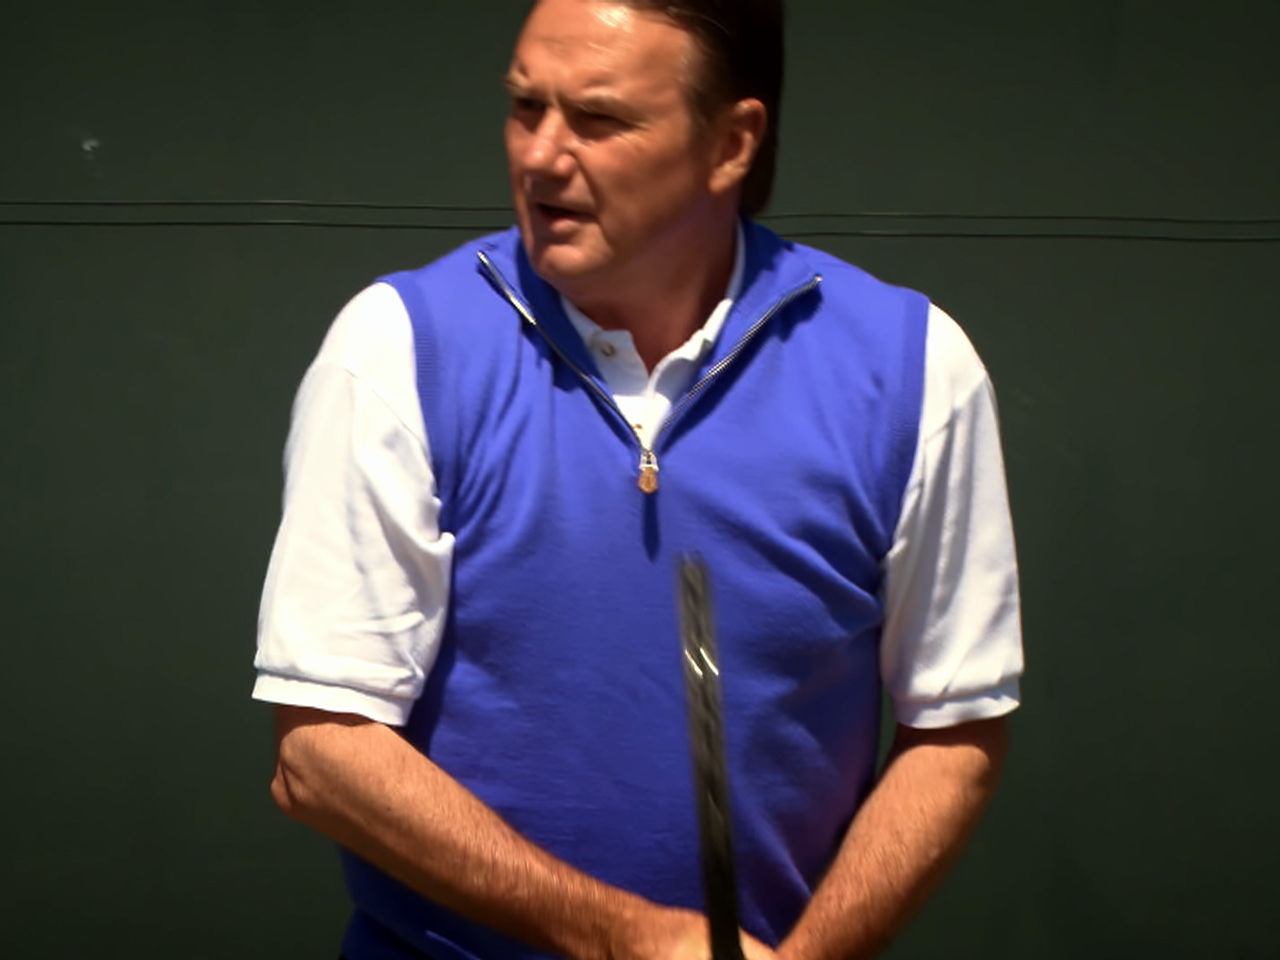 Tennis legend Jimmy Connors reveals all Video on NBCNews